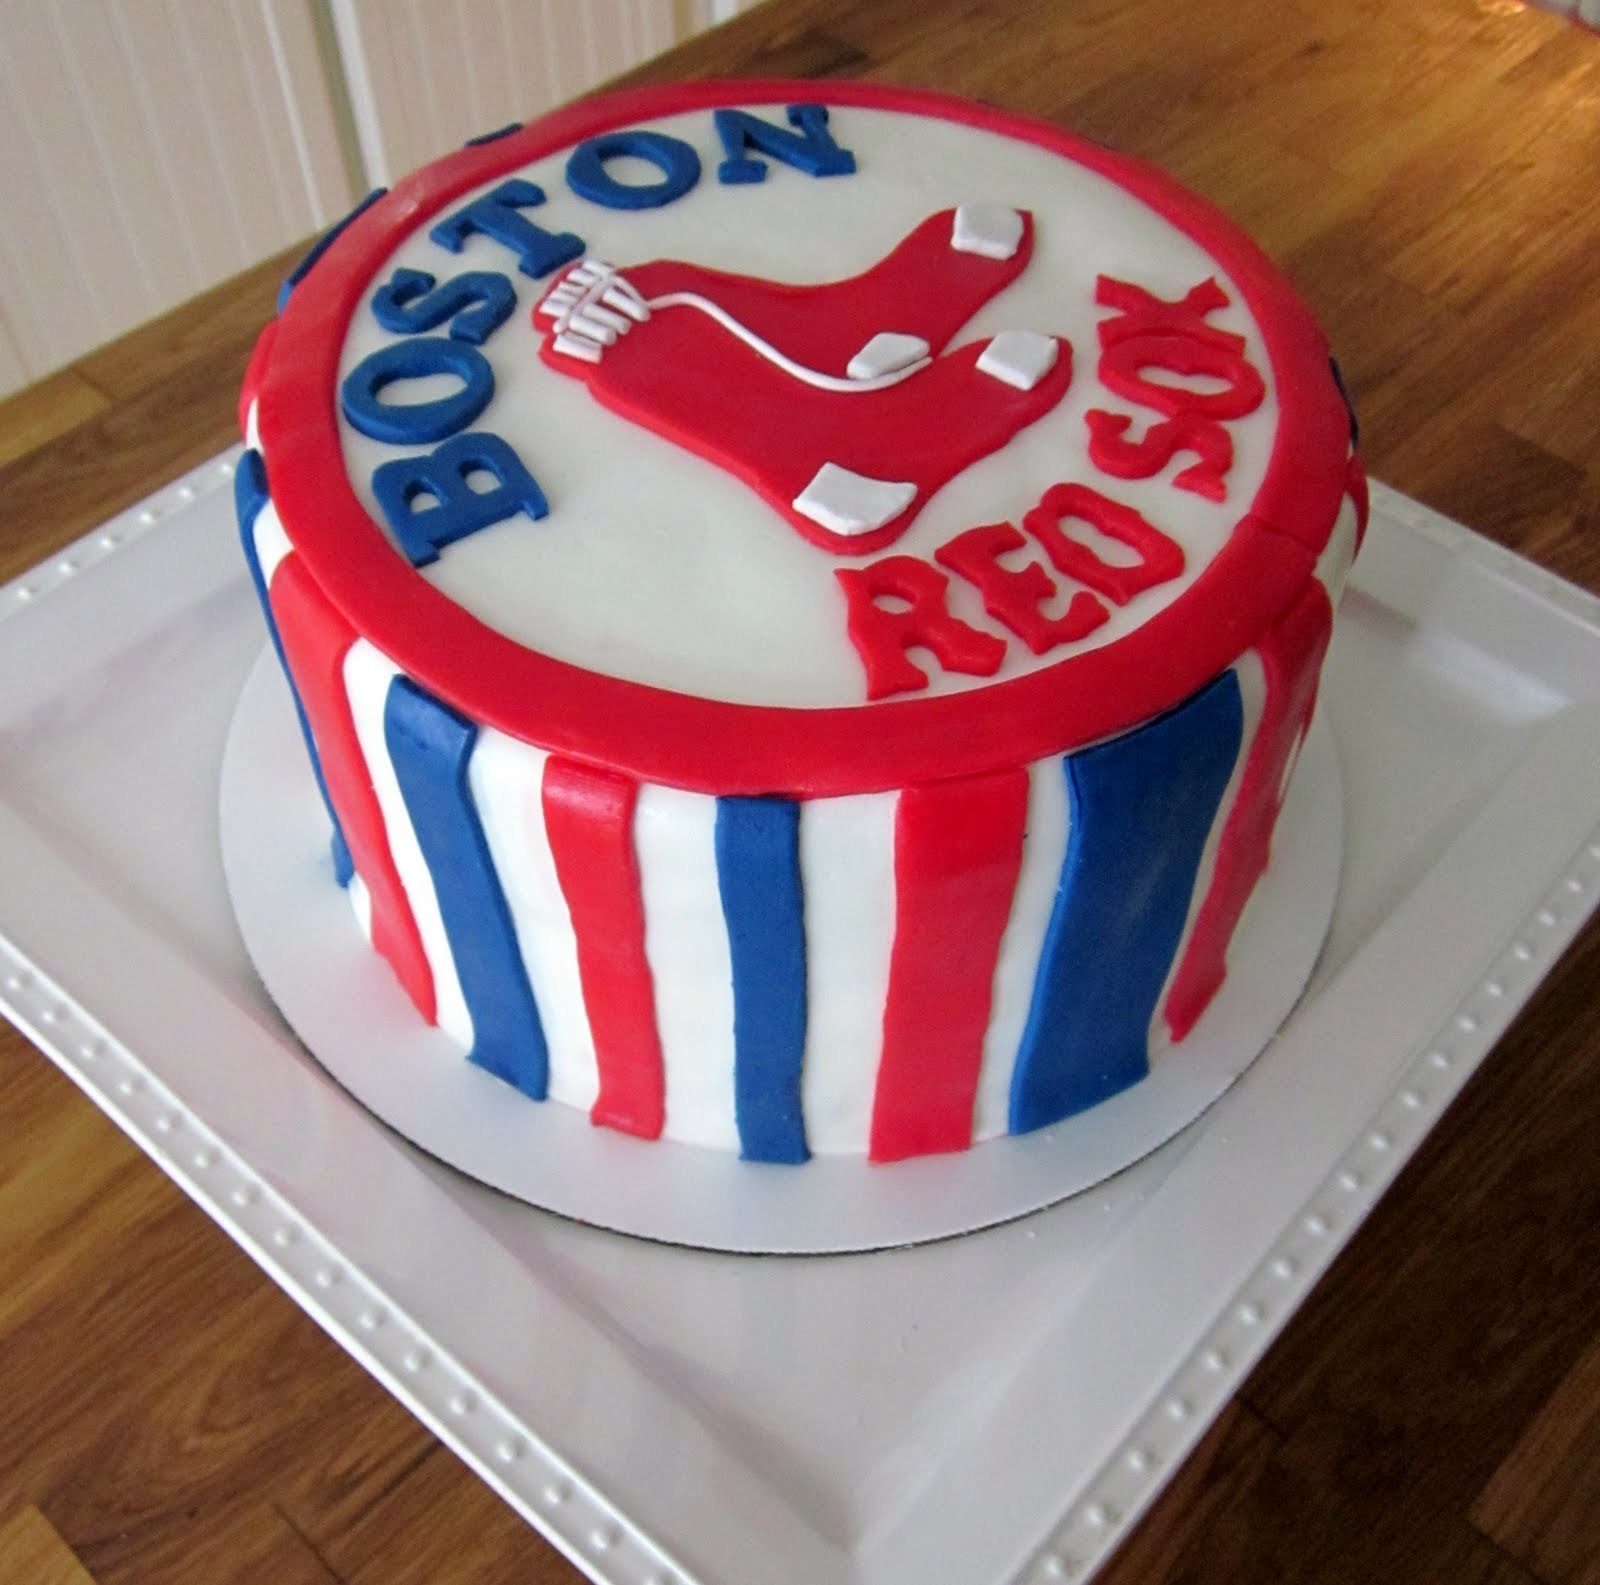 Red Sox Cake Images : Boston Red Sox Cake Images